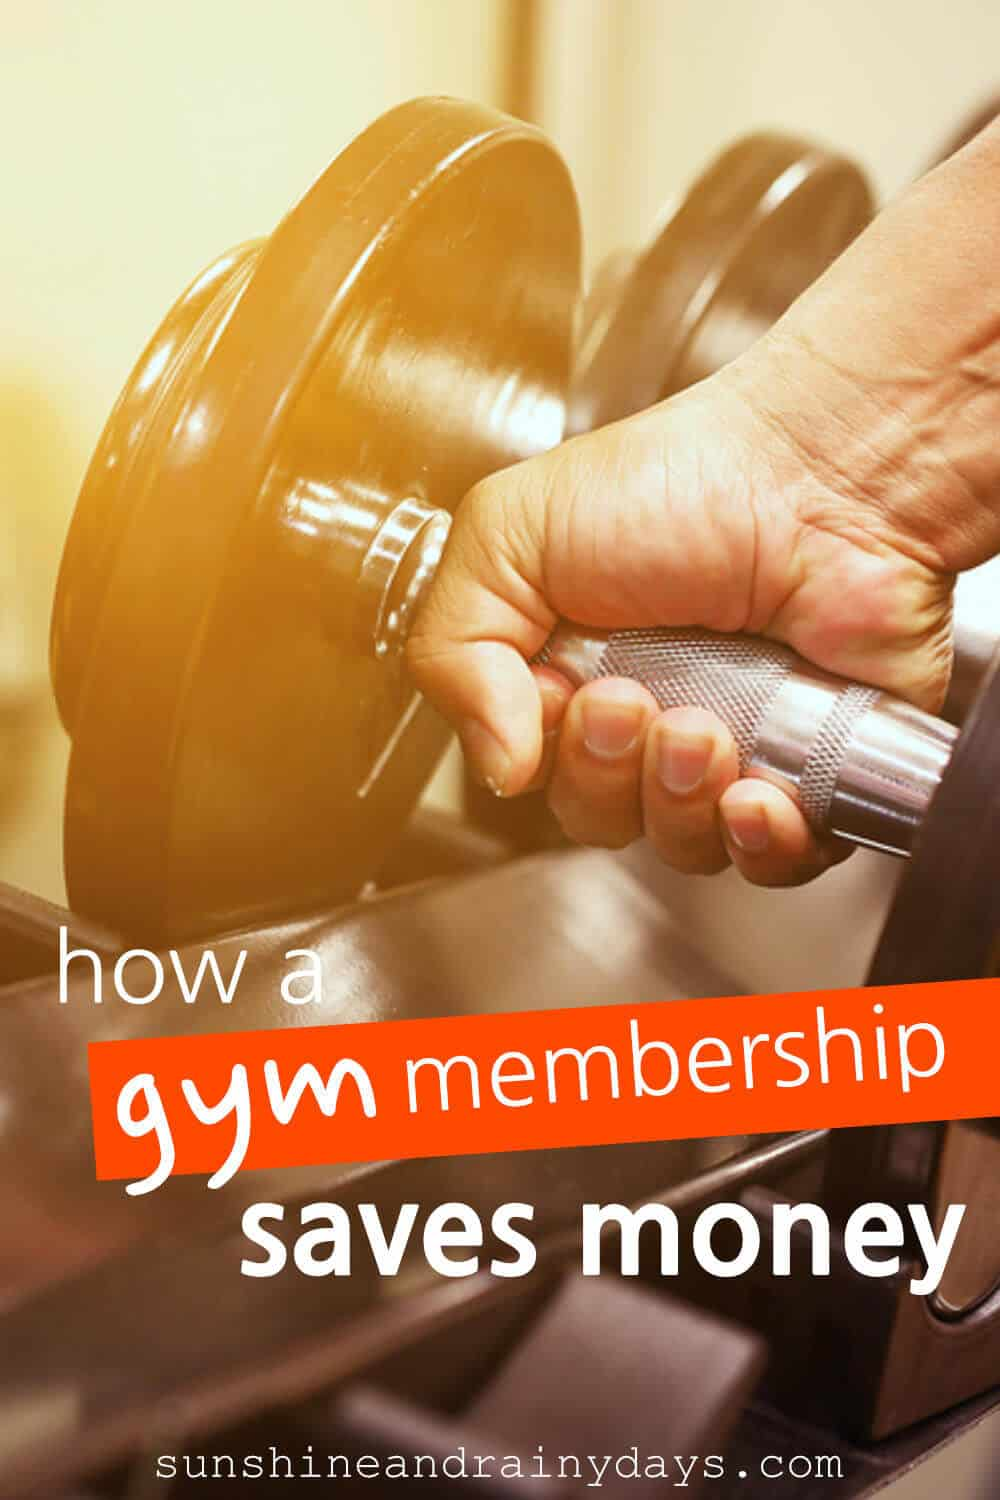 It sounds ridiculous! A gym membership is usually the first to go when you implement cost saving measures. After all, you can always go for a walk or run. There ARE ways to stay in shape without paying the big bucks month after month for a gym membership but what if I told you a gym membership can save you money? REAL money!